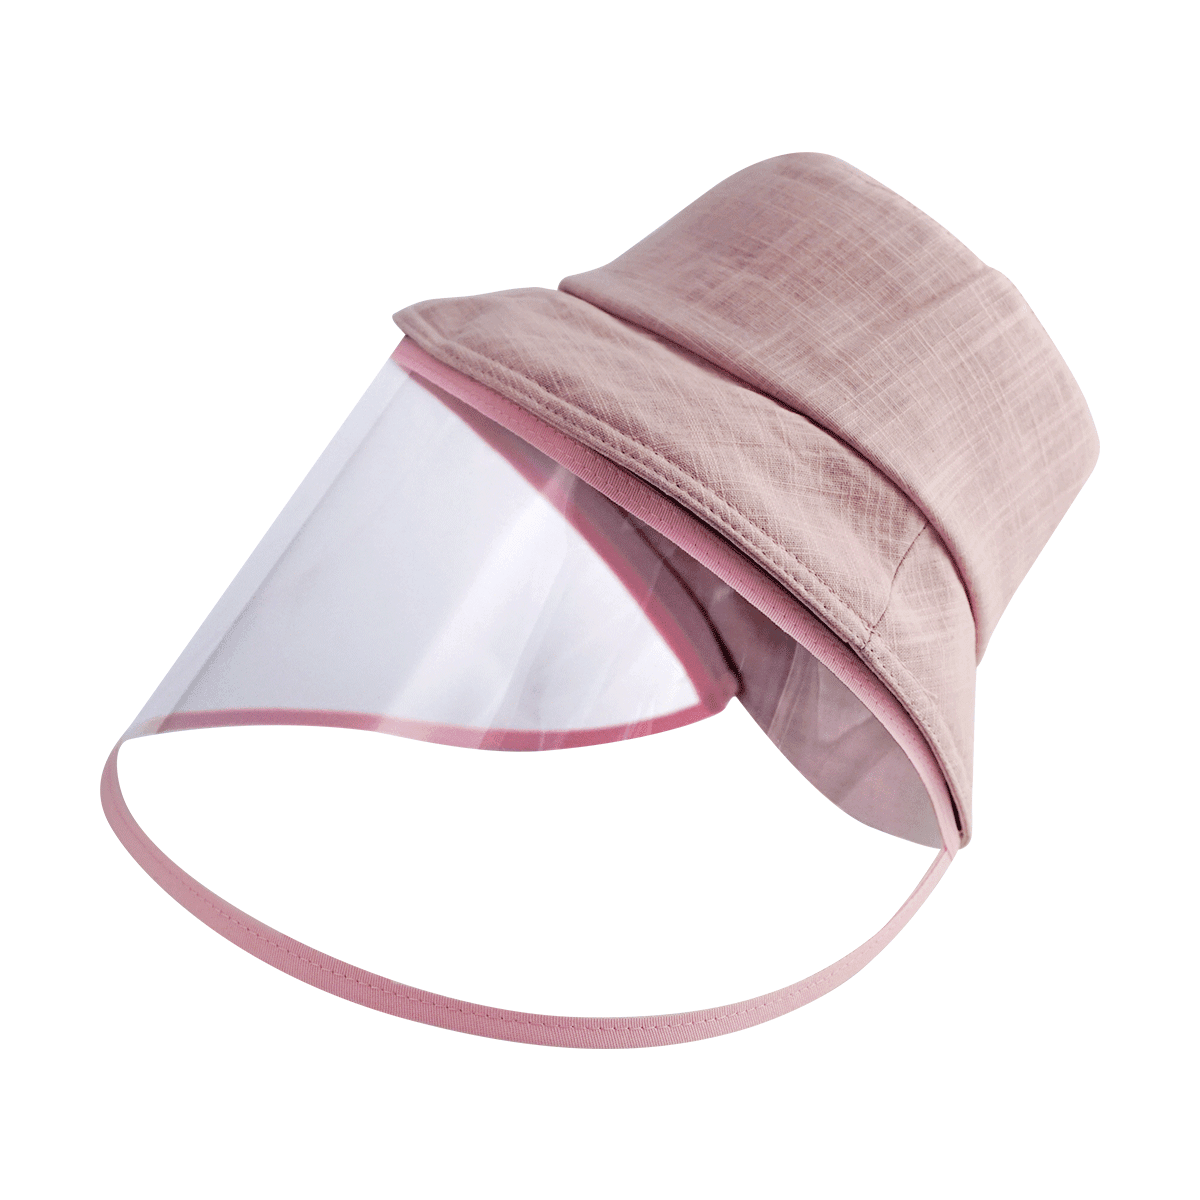 Yamibuy.com:Customer reviews:[Face Coverage] Sun Protection Fashion Hat with Detachable Transparent Face Cover #Hot Pink